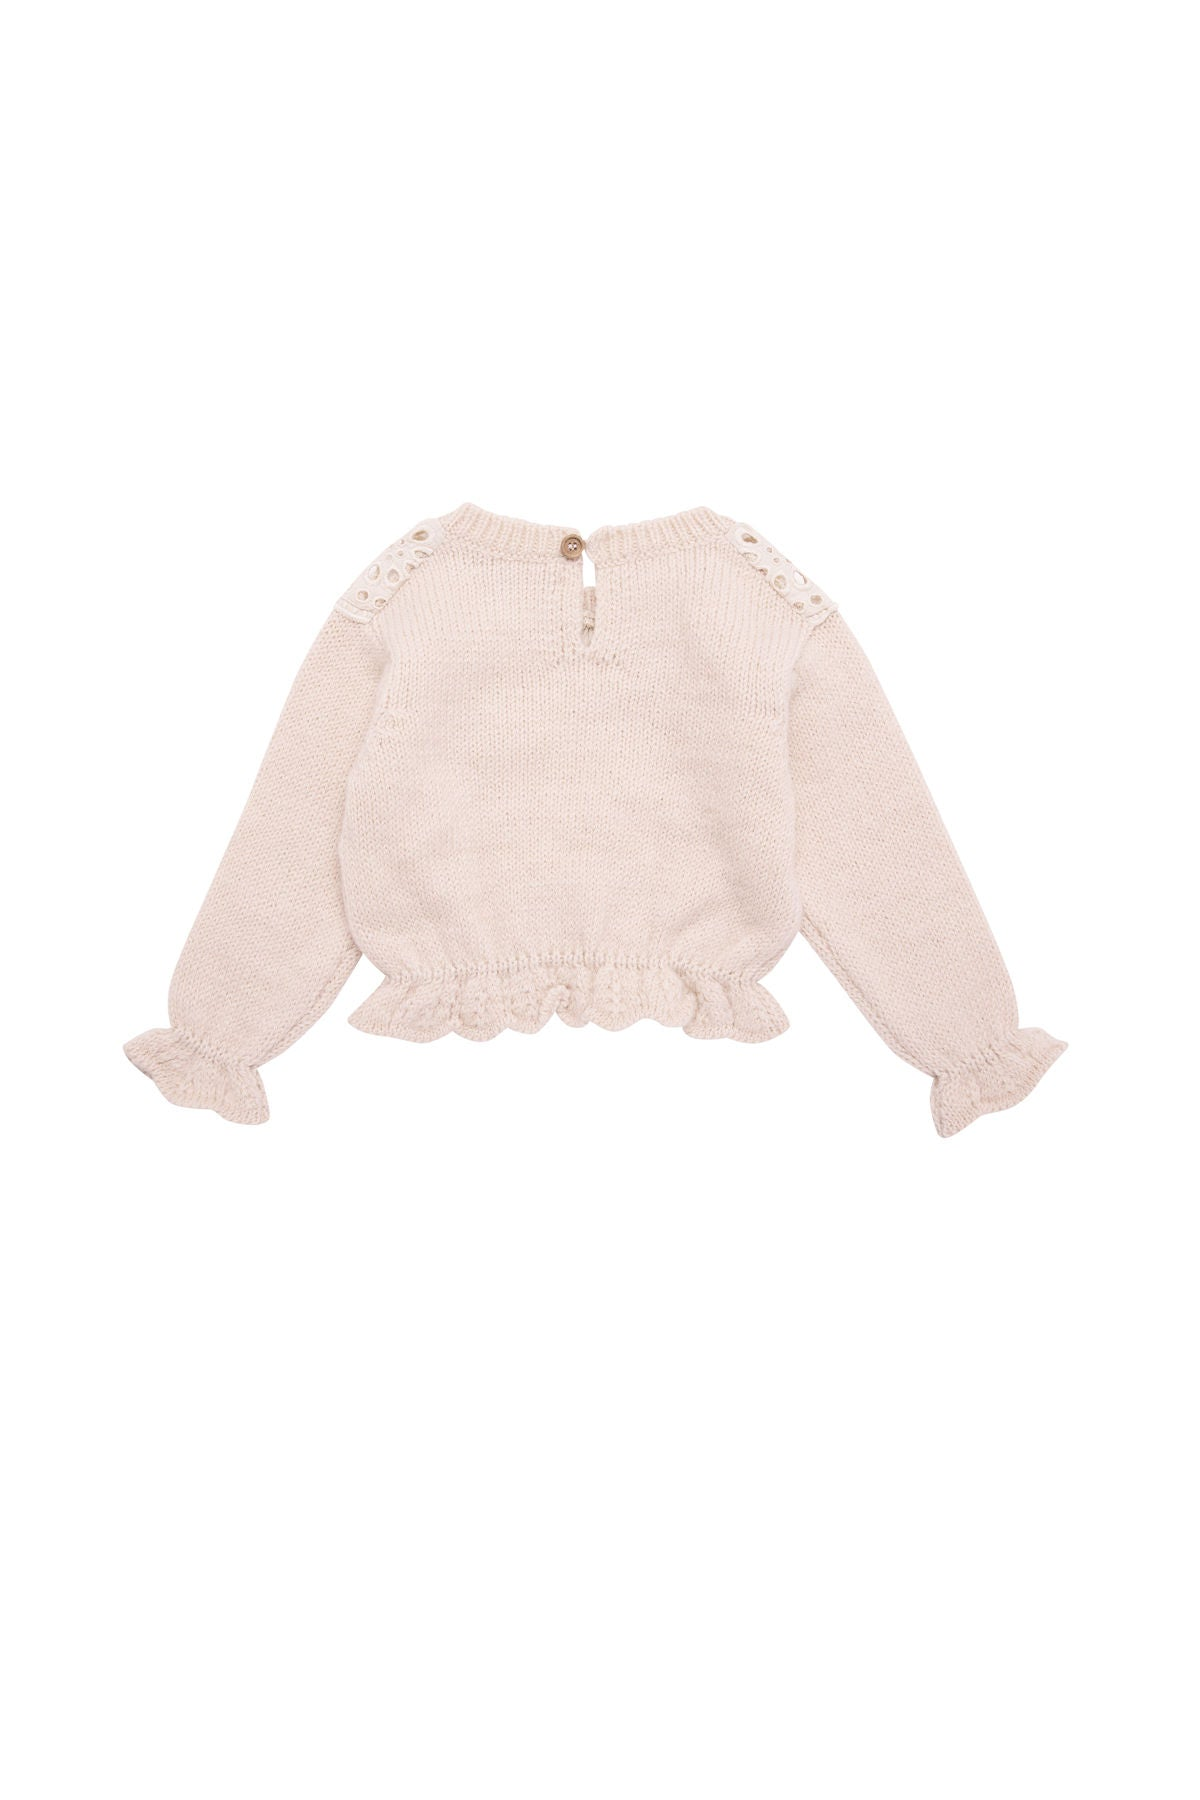 The New Society Blush Garance Baby Sweater